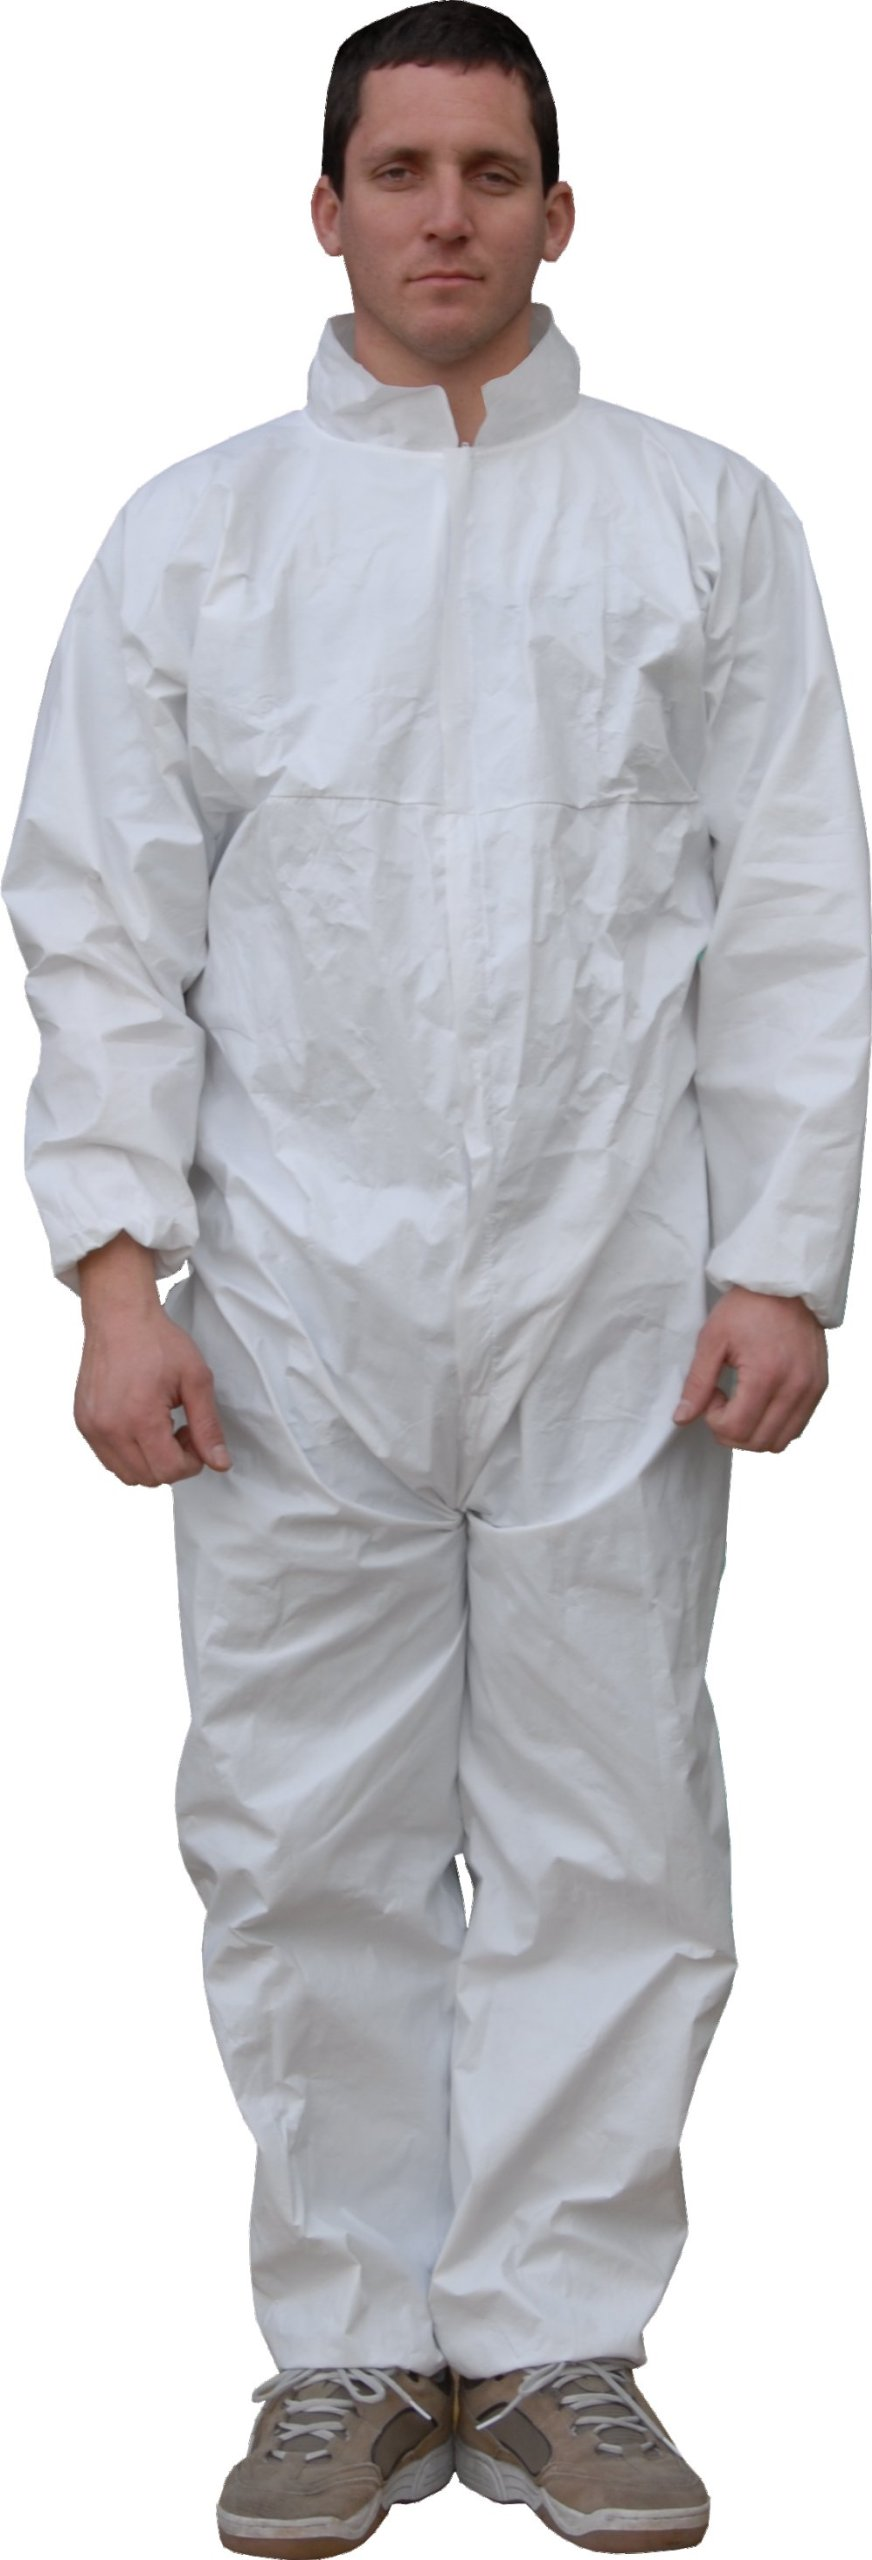 Majestic Glove 74-101 ComforTEX Microporous Coverall, Disposable, Elastic Cuff, 5X-Large (Case of 25)